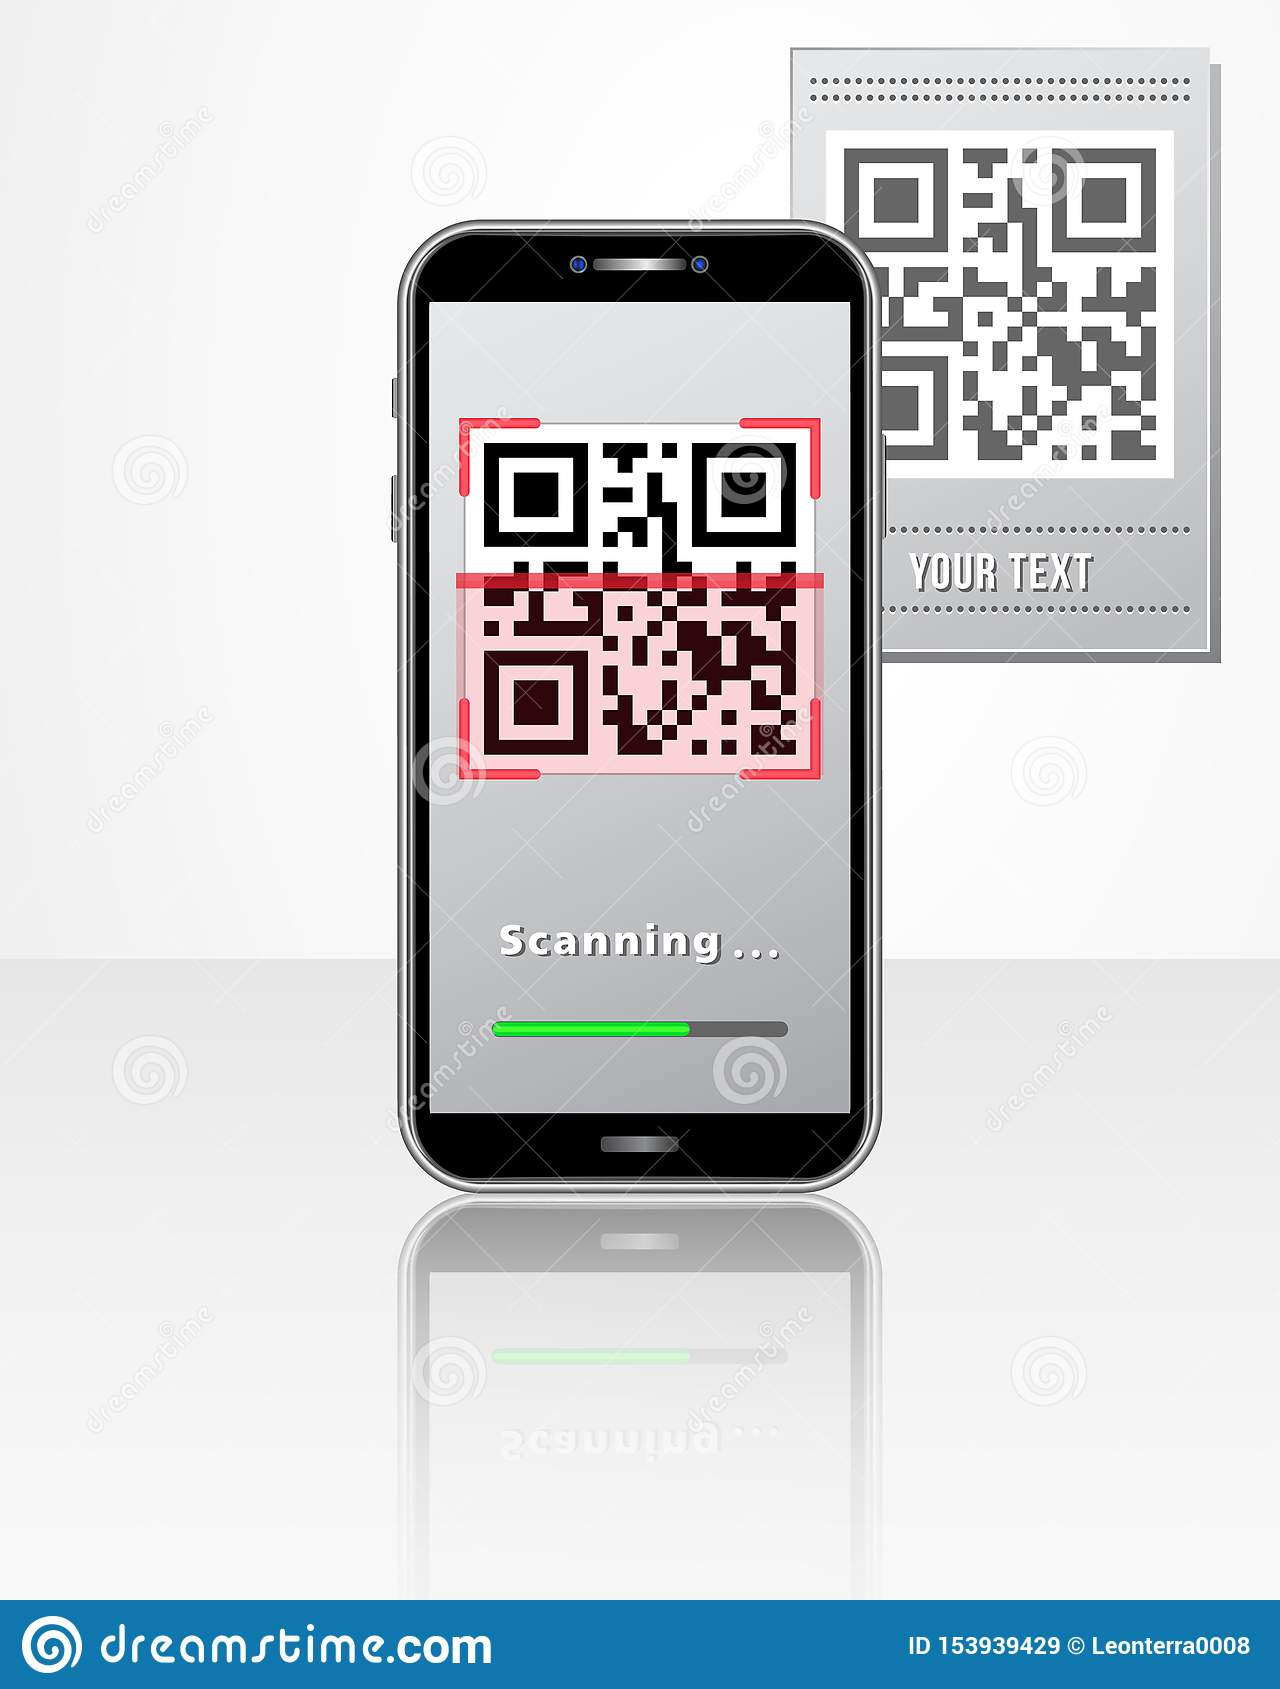 Scanning QR code product price tag using smartphone with mobile app isolated on white glossy table. Design concept for online shop